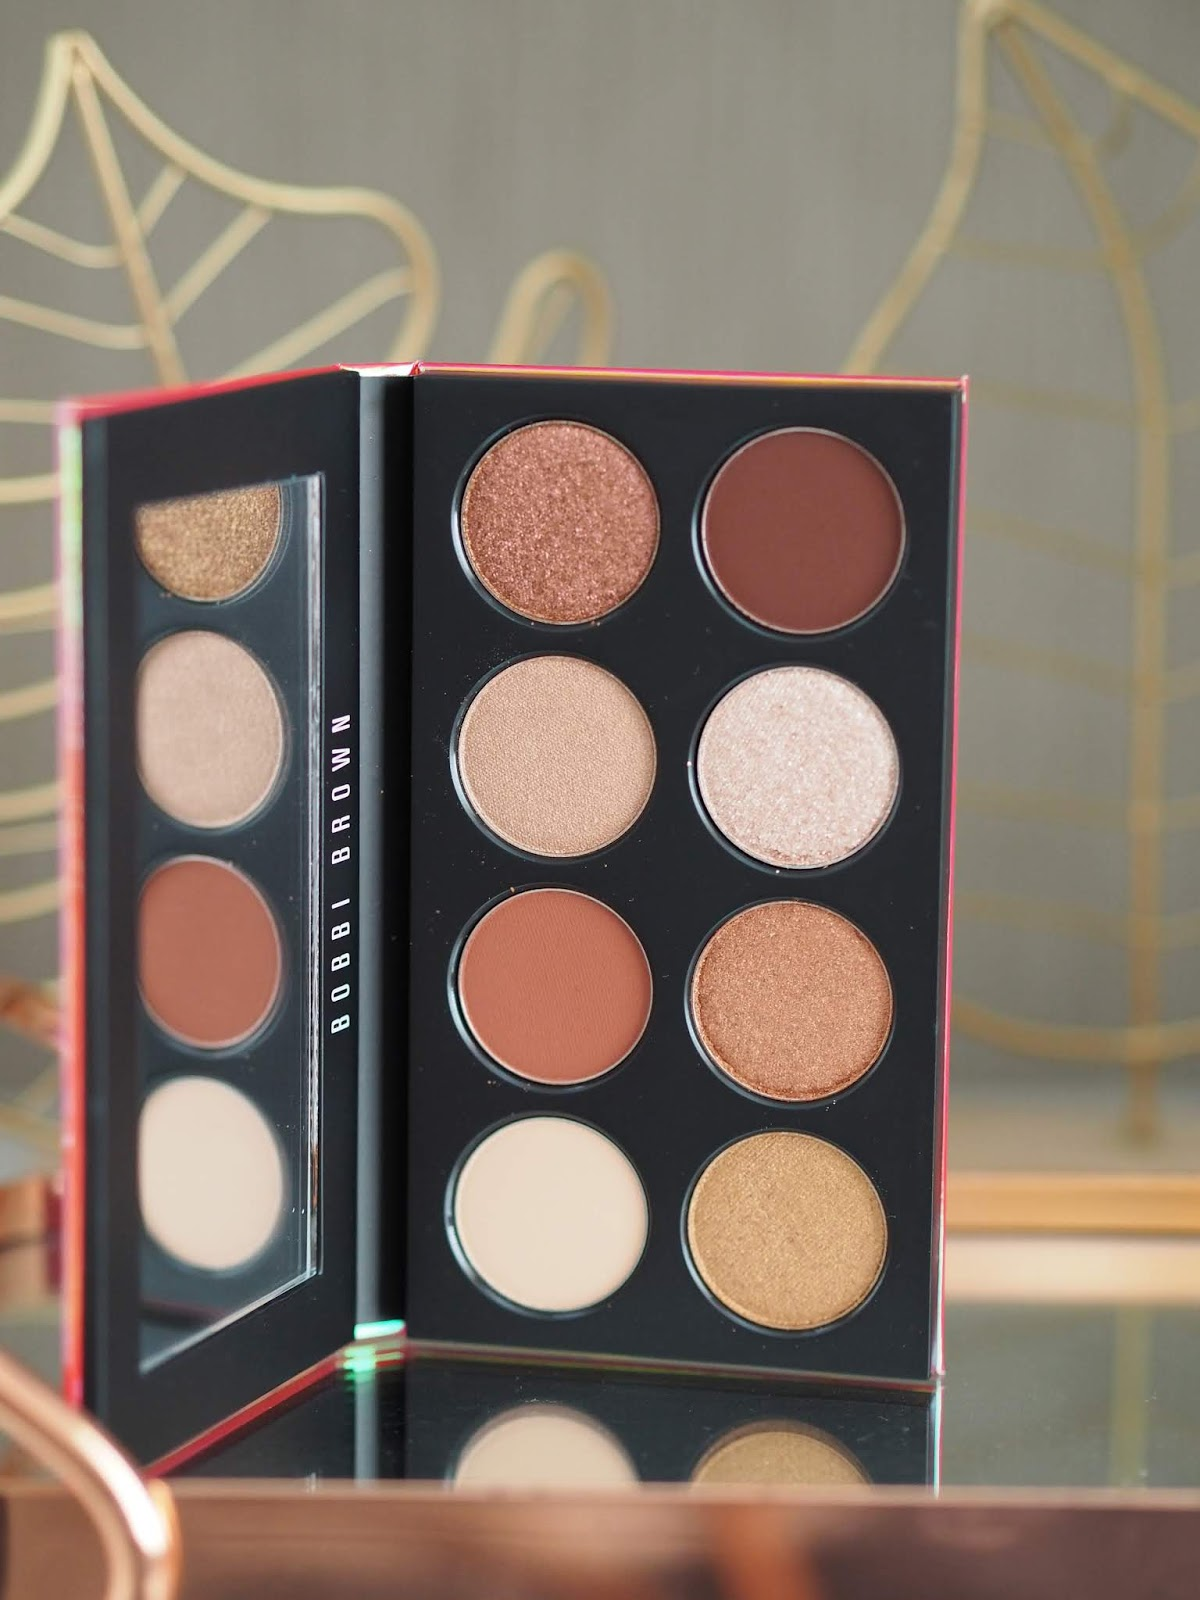 Bobbi Brown Summer 2019 review, photos, swatches, video!